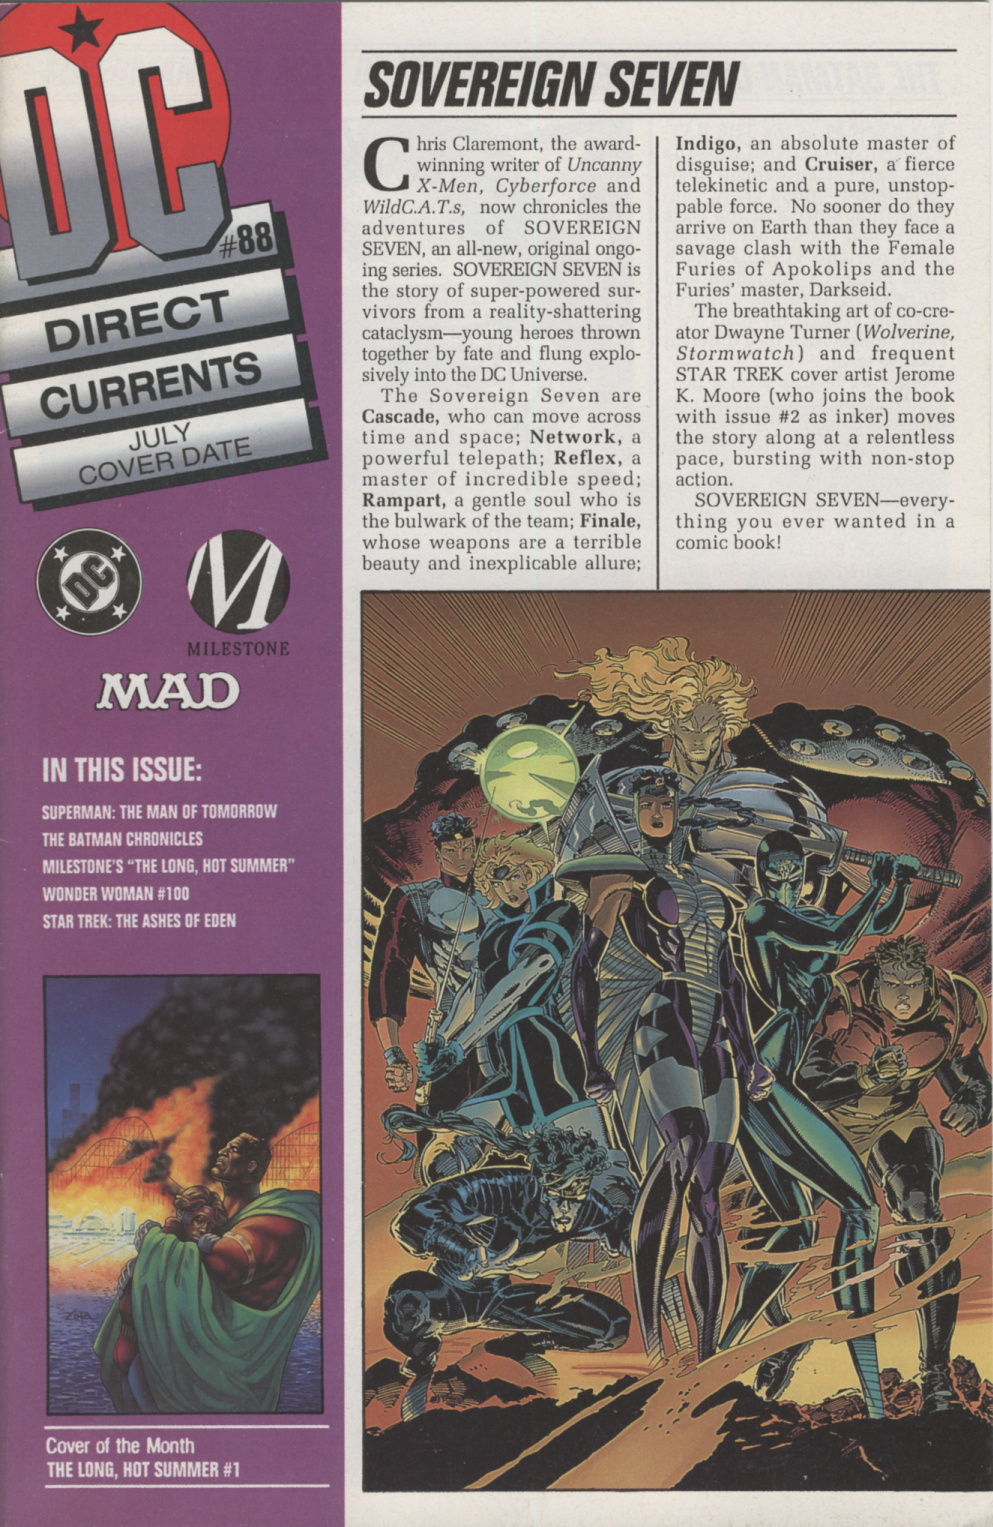 Time Capsule: DC Direct Currents 88 July 1995